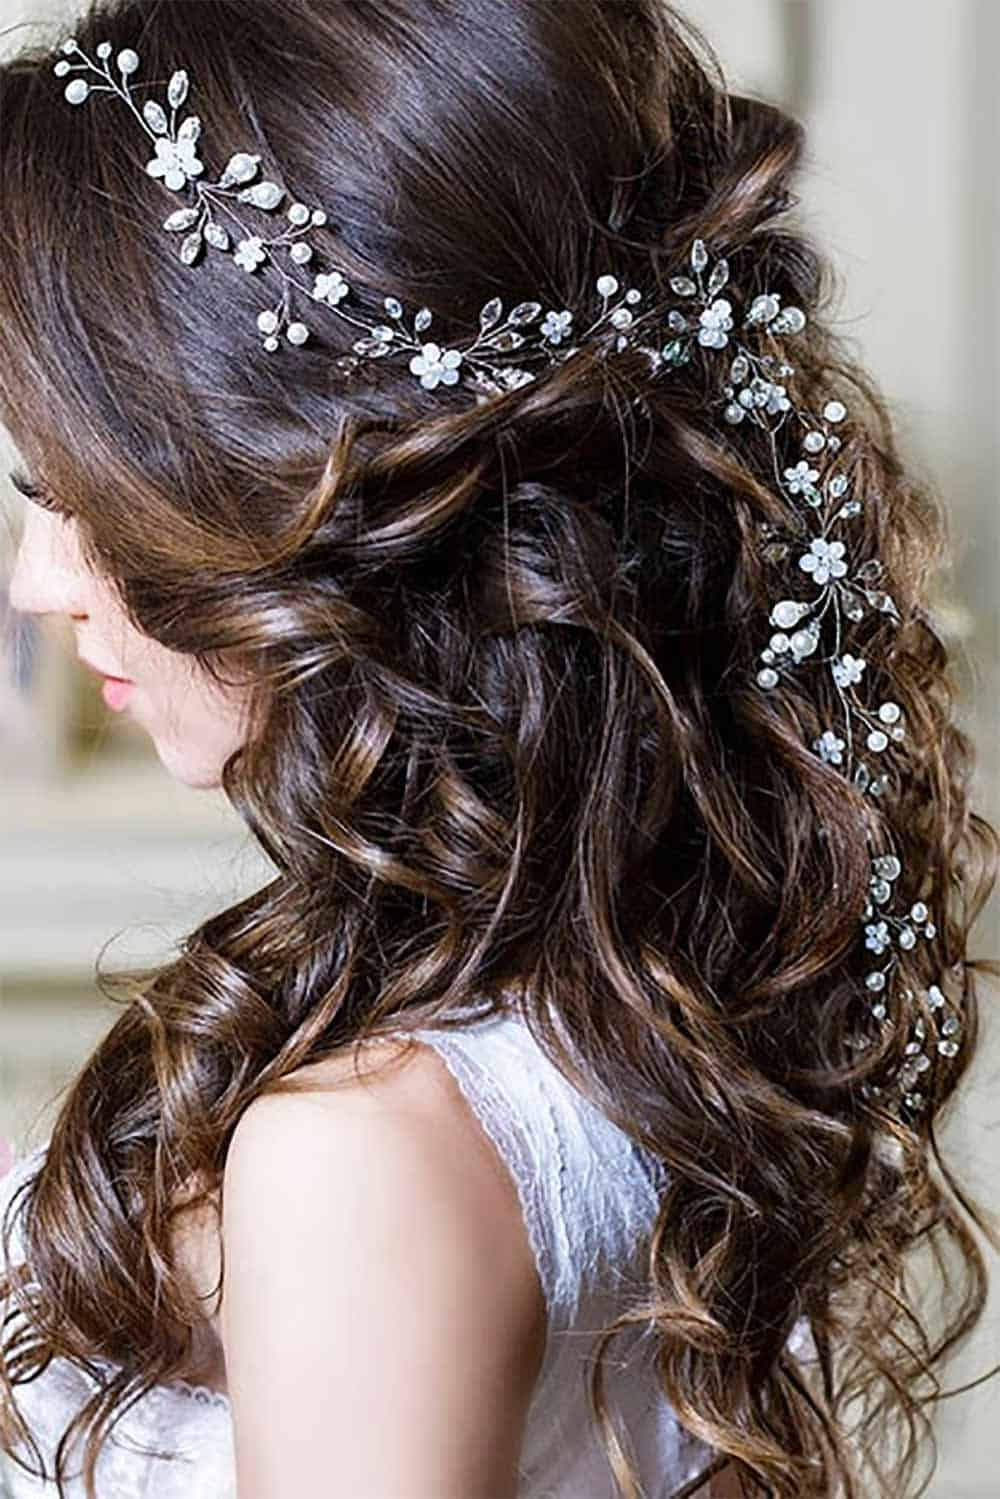 Bridal wedding hair vine. In lengths for short, medium, or long hair styles. Prices start at $13.50. Get more info or buy in the My Online Wedding Help products section.